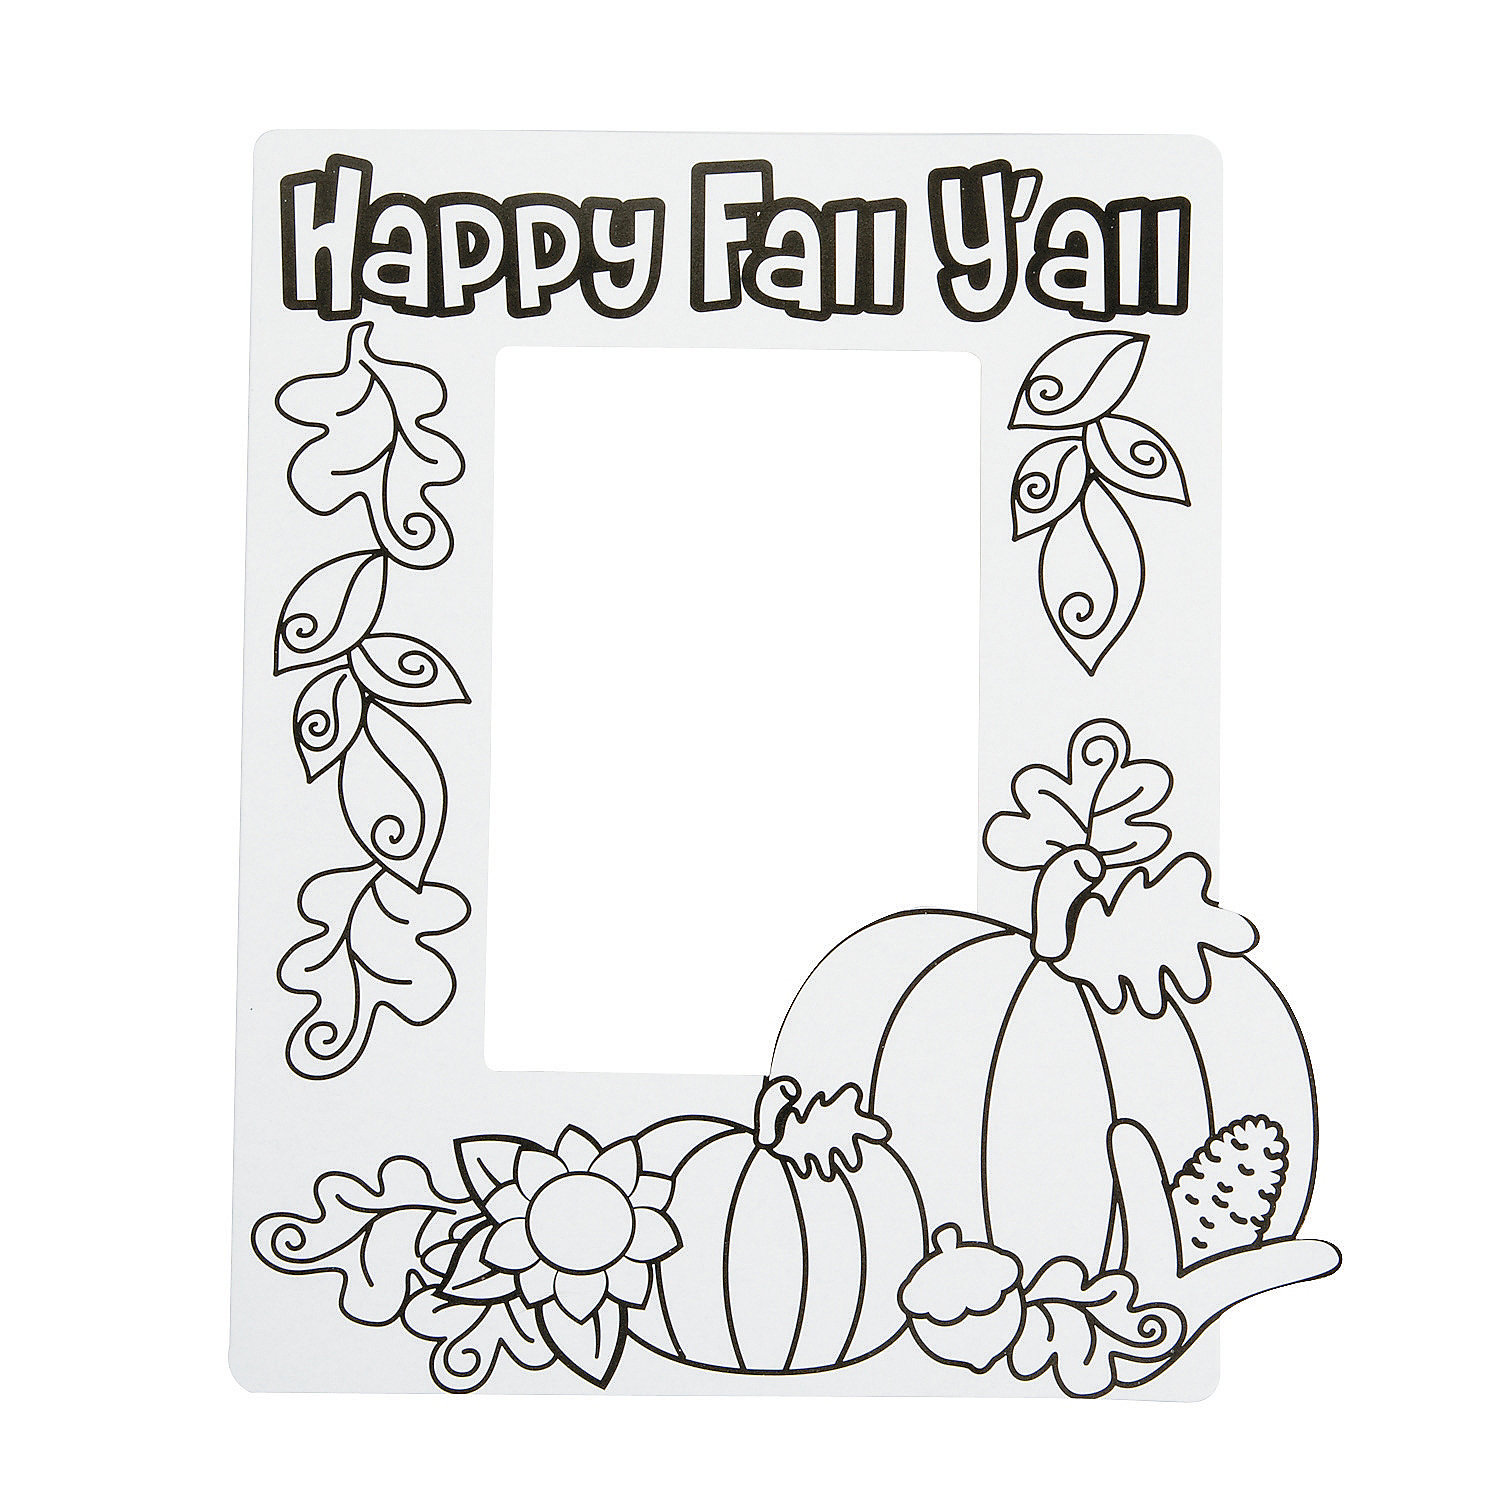 oriental trading coloring pages printable coloring image color your own happy fall y all picture frame magnets